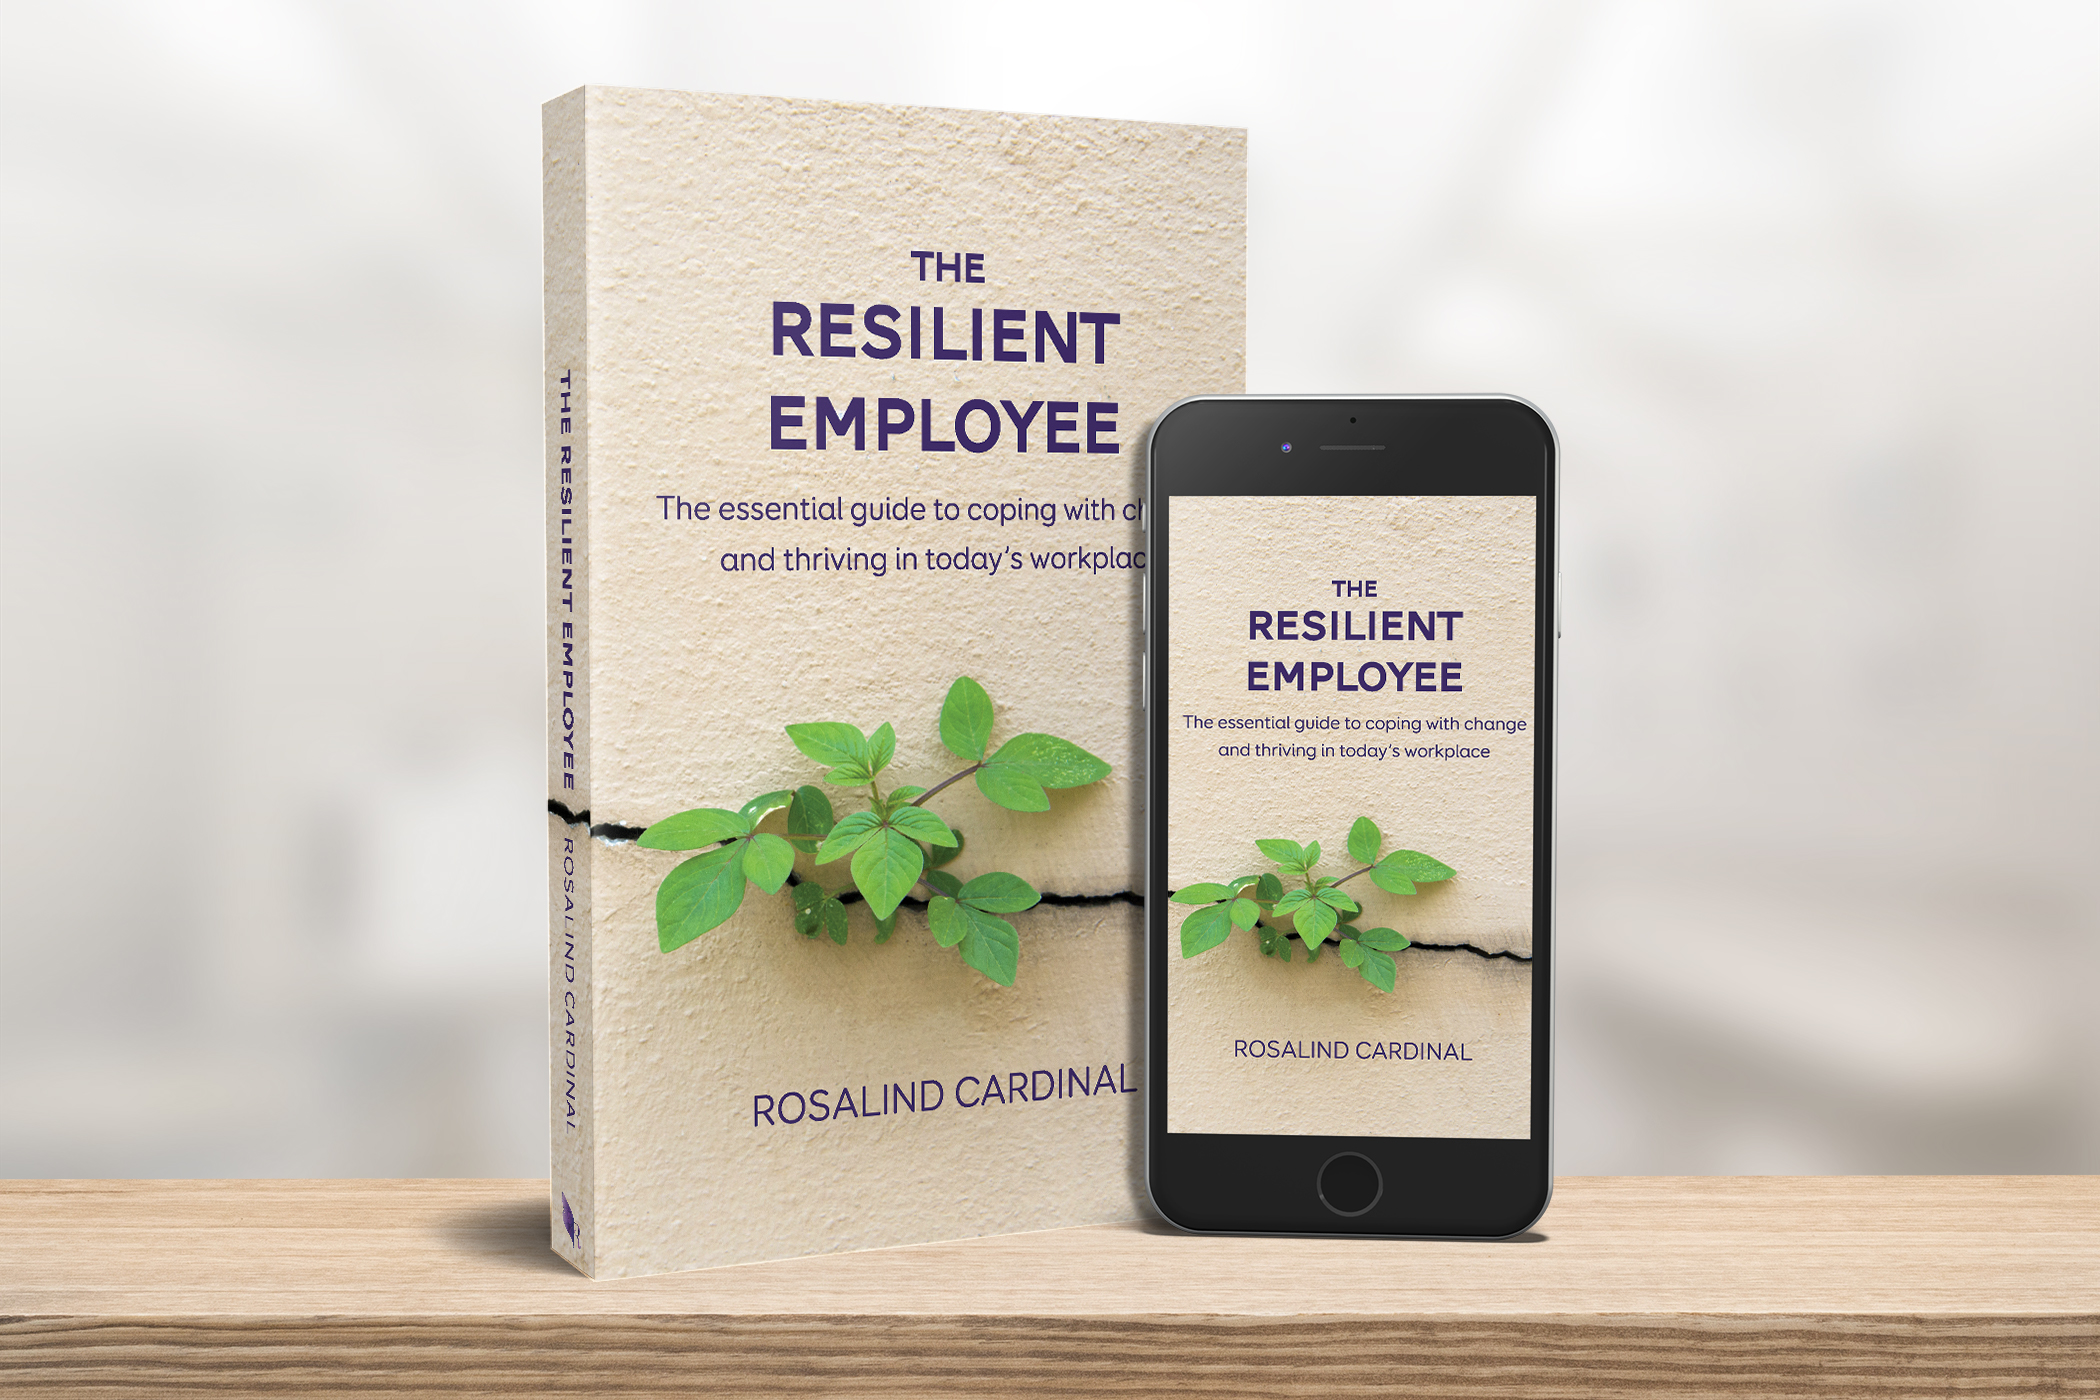 Book: The Resilient Employee